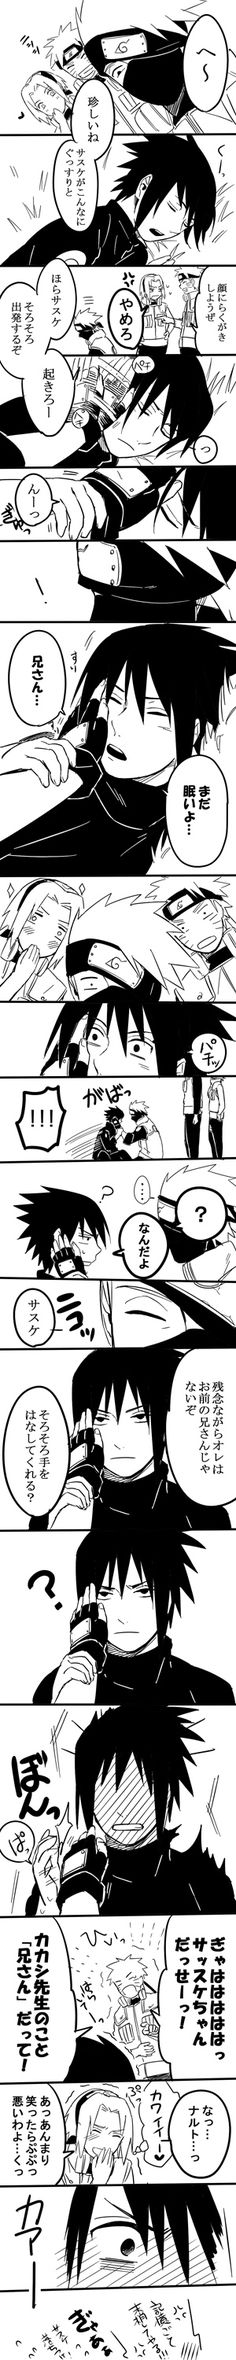 Embarrassed Sasuke, dreaming of oniisan?